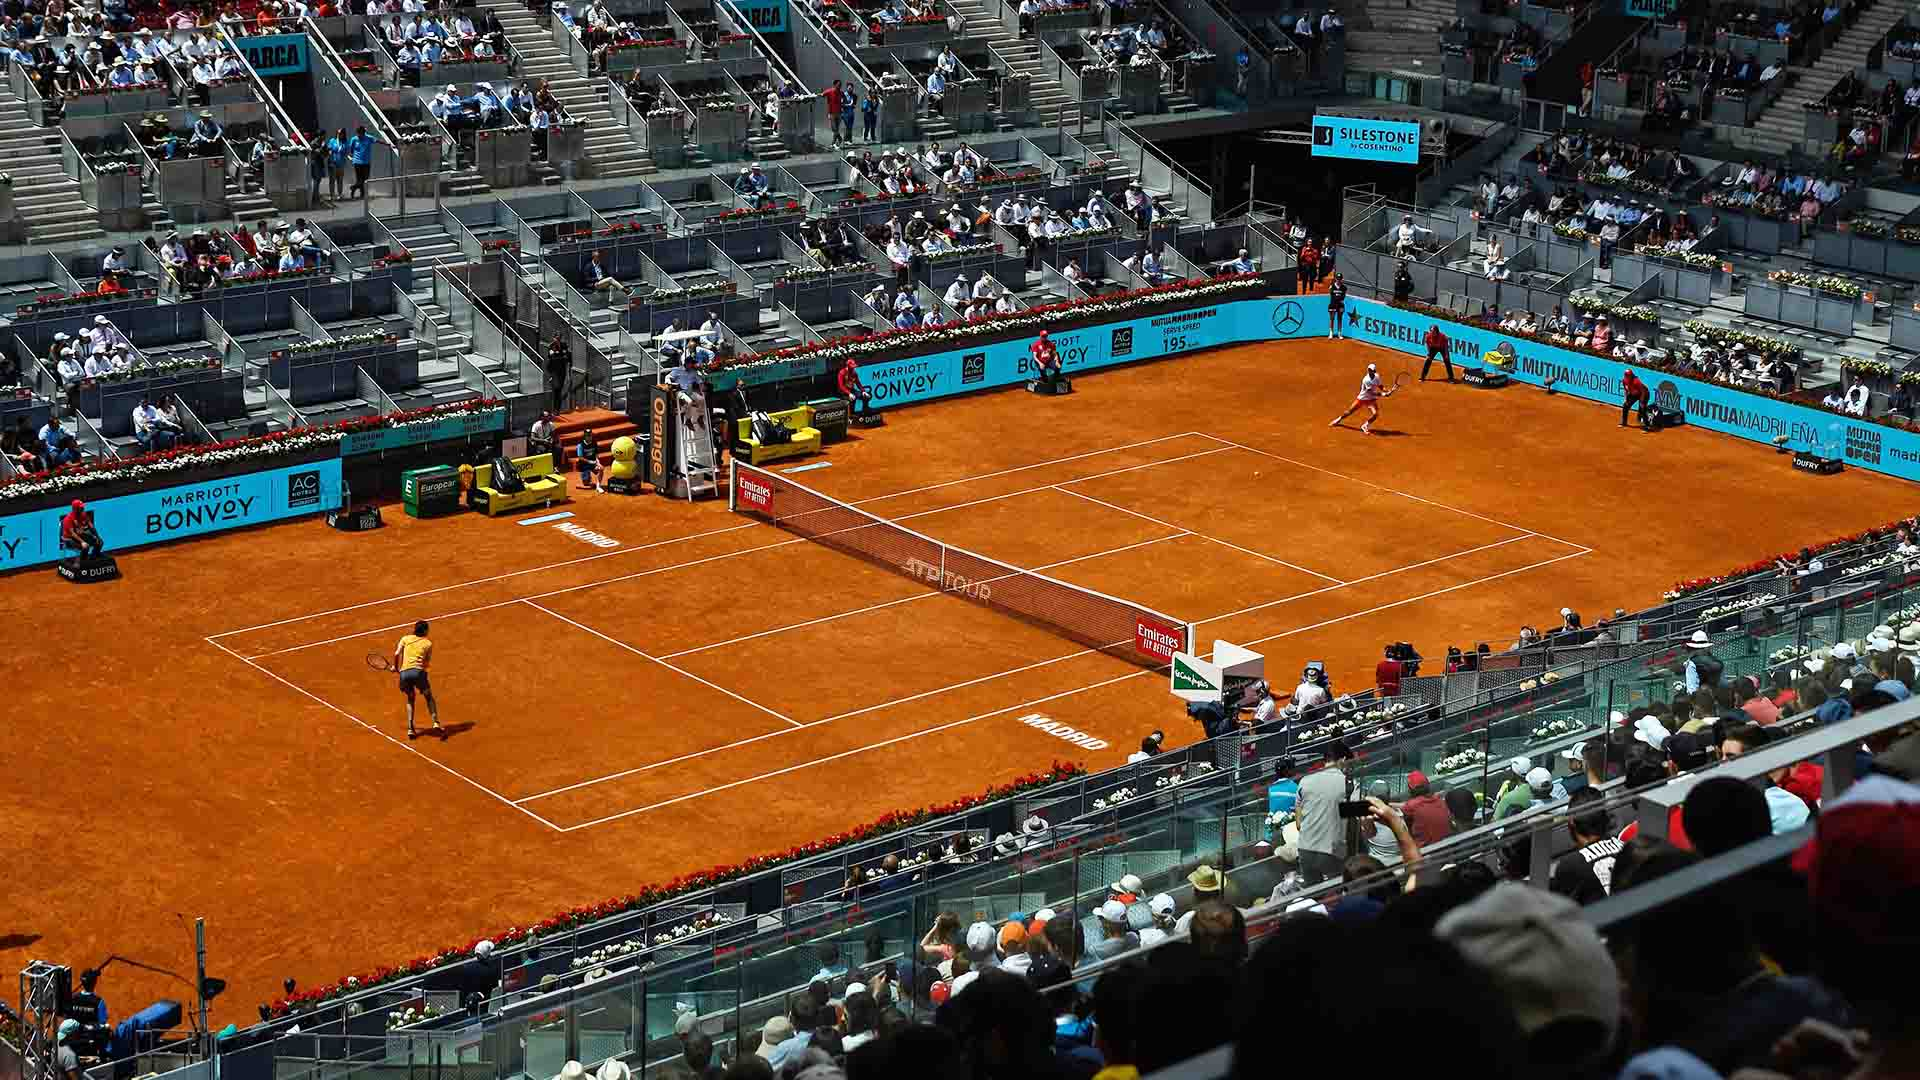 The Mutua Madrid Open will feature Electronic Line Calling for the first time in 2020.